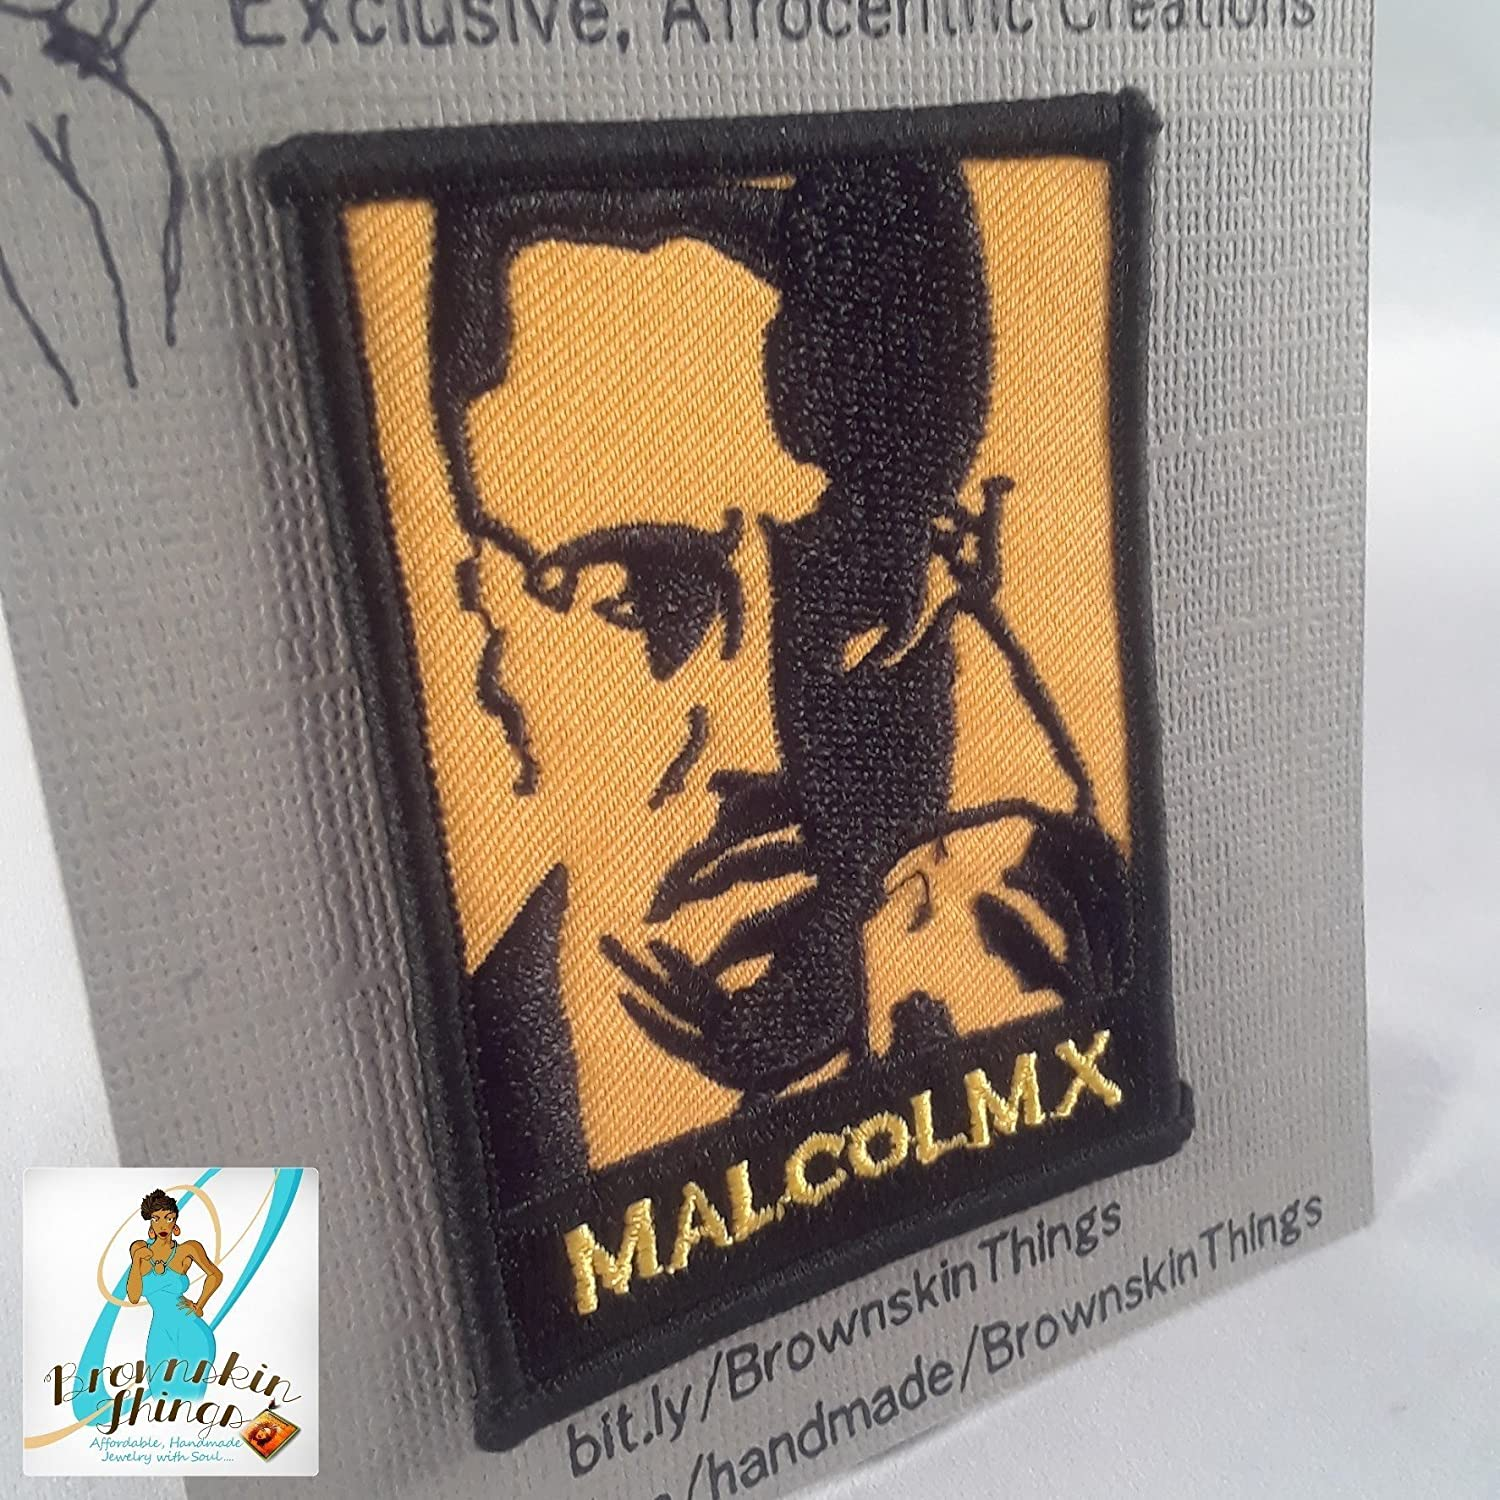 Malcolm X Patch - 3.00x2.25 inches - Iron On - Embroidery